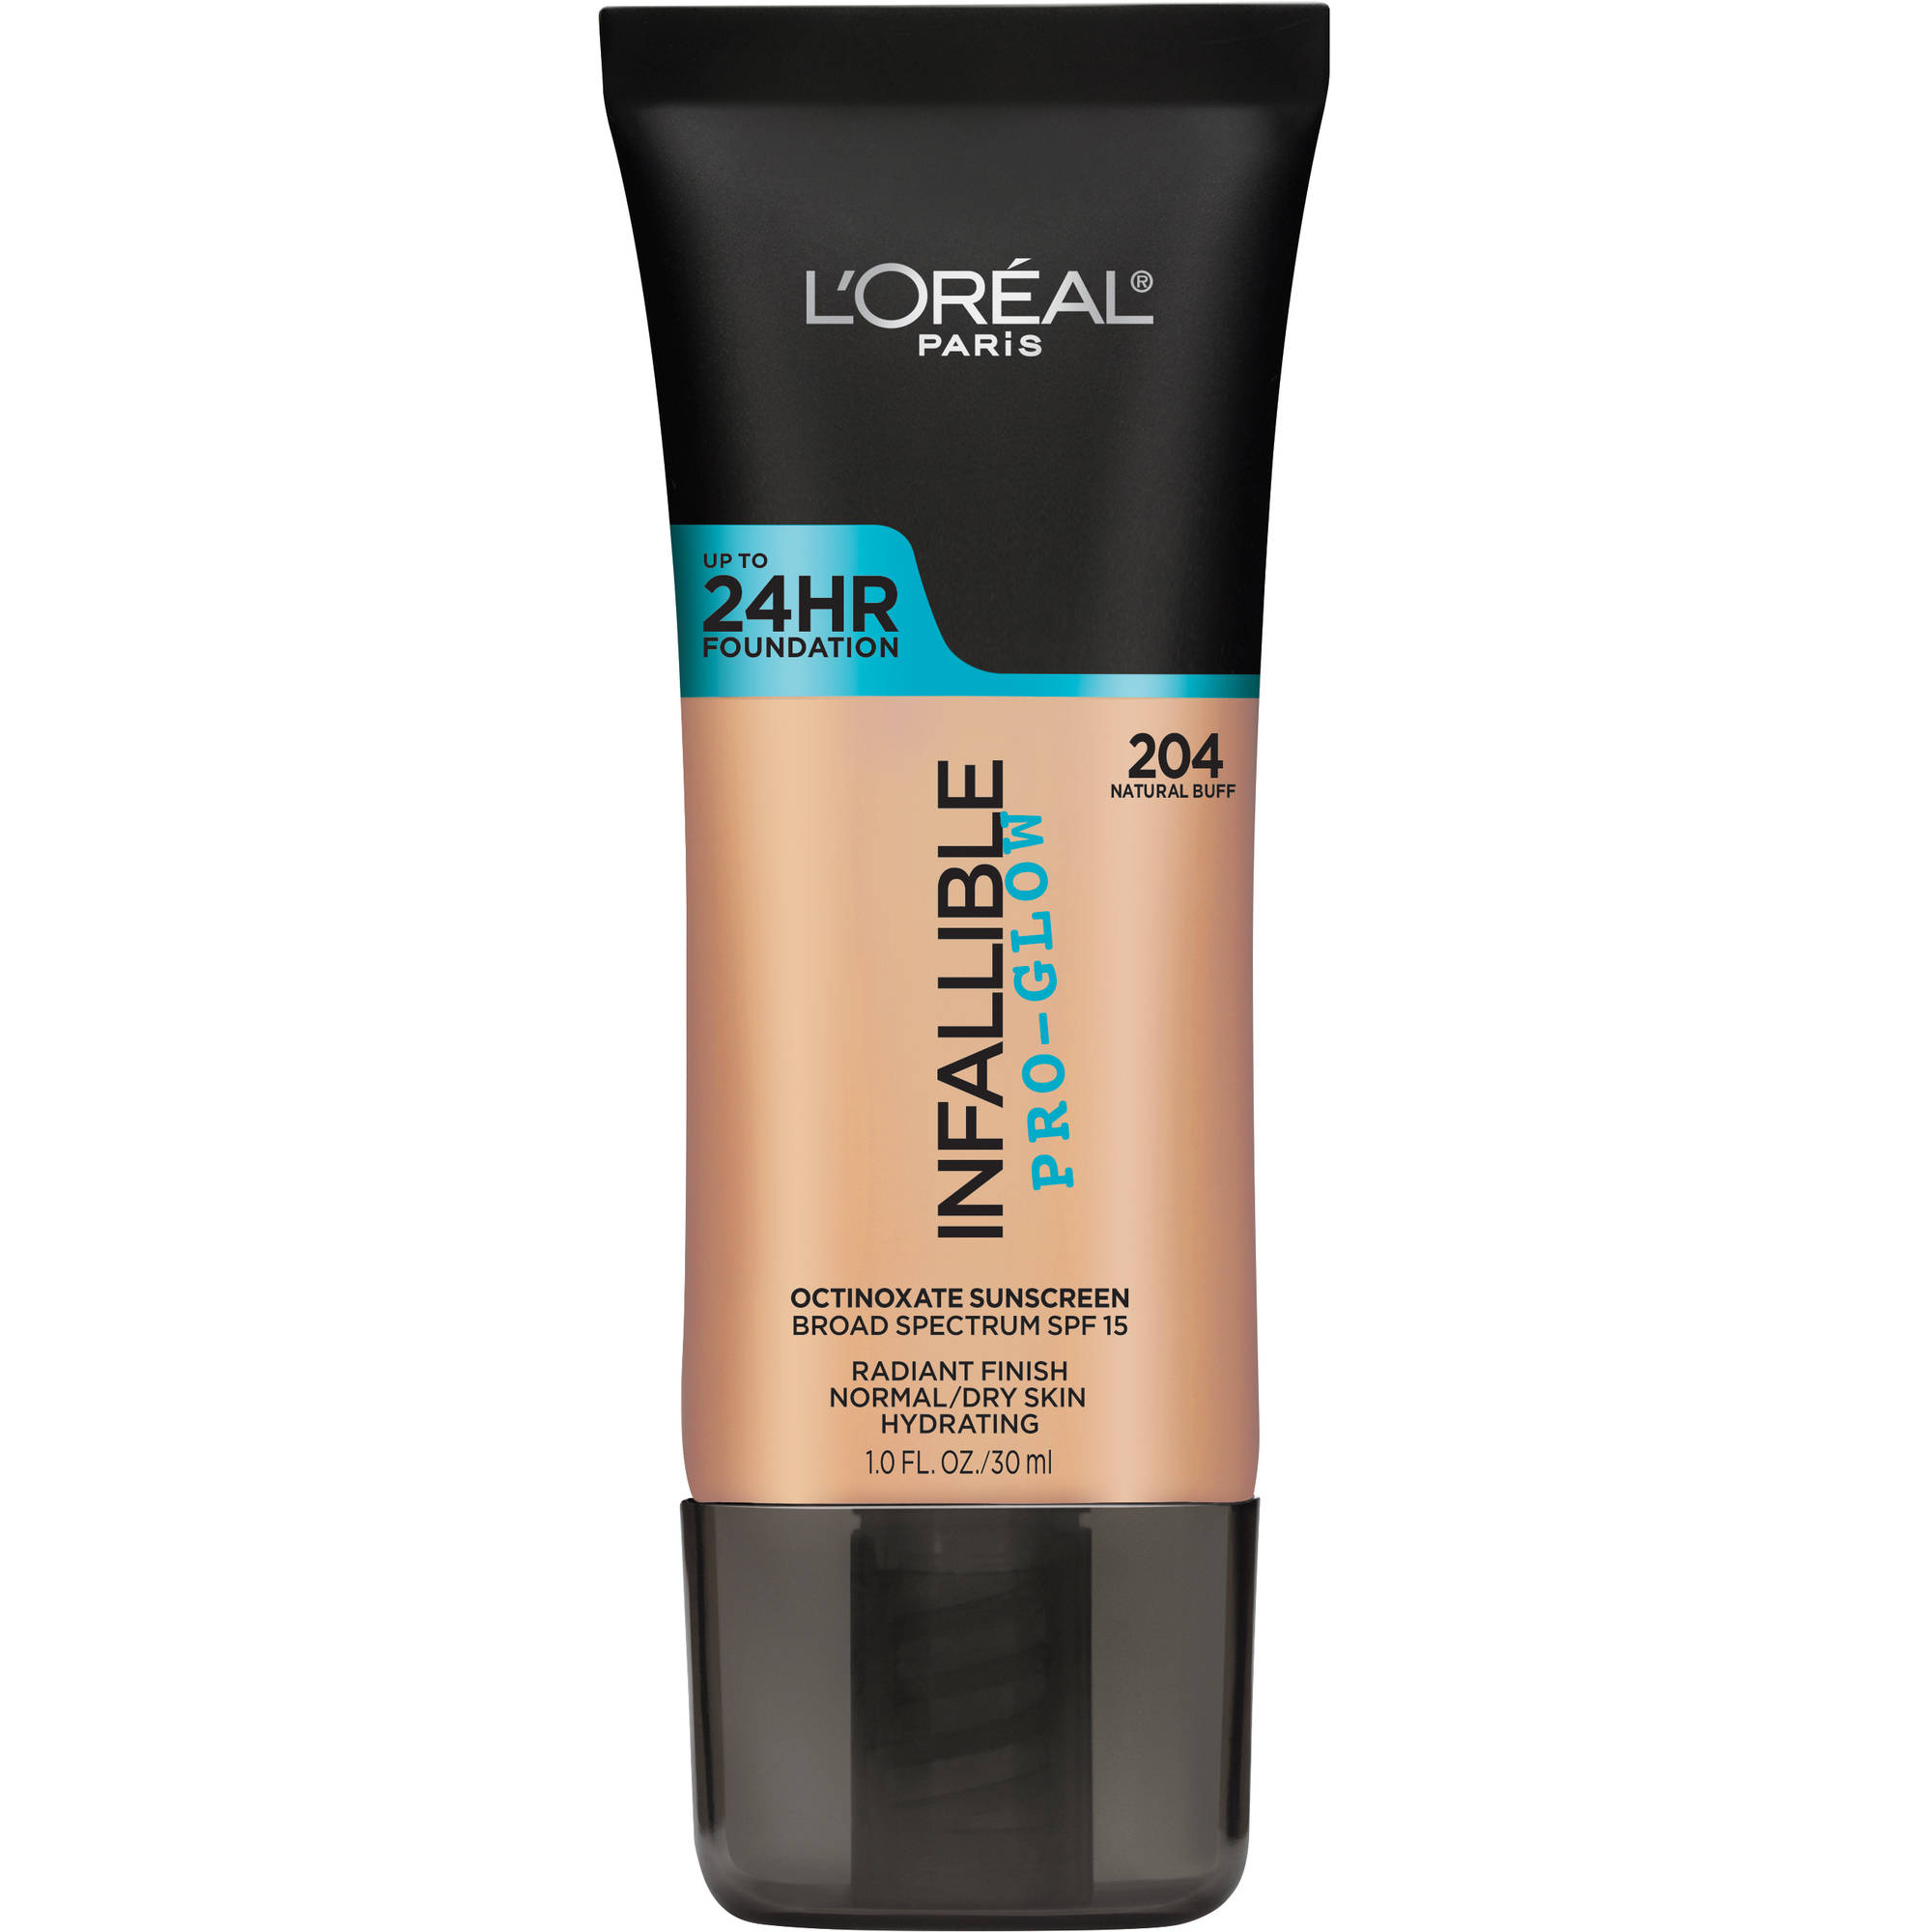 L'Oreal Paris Infallible Pro-Glow Foundation, Natural Buff